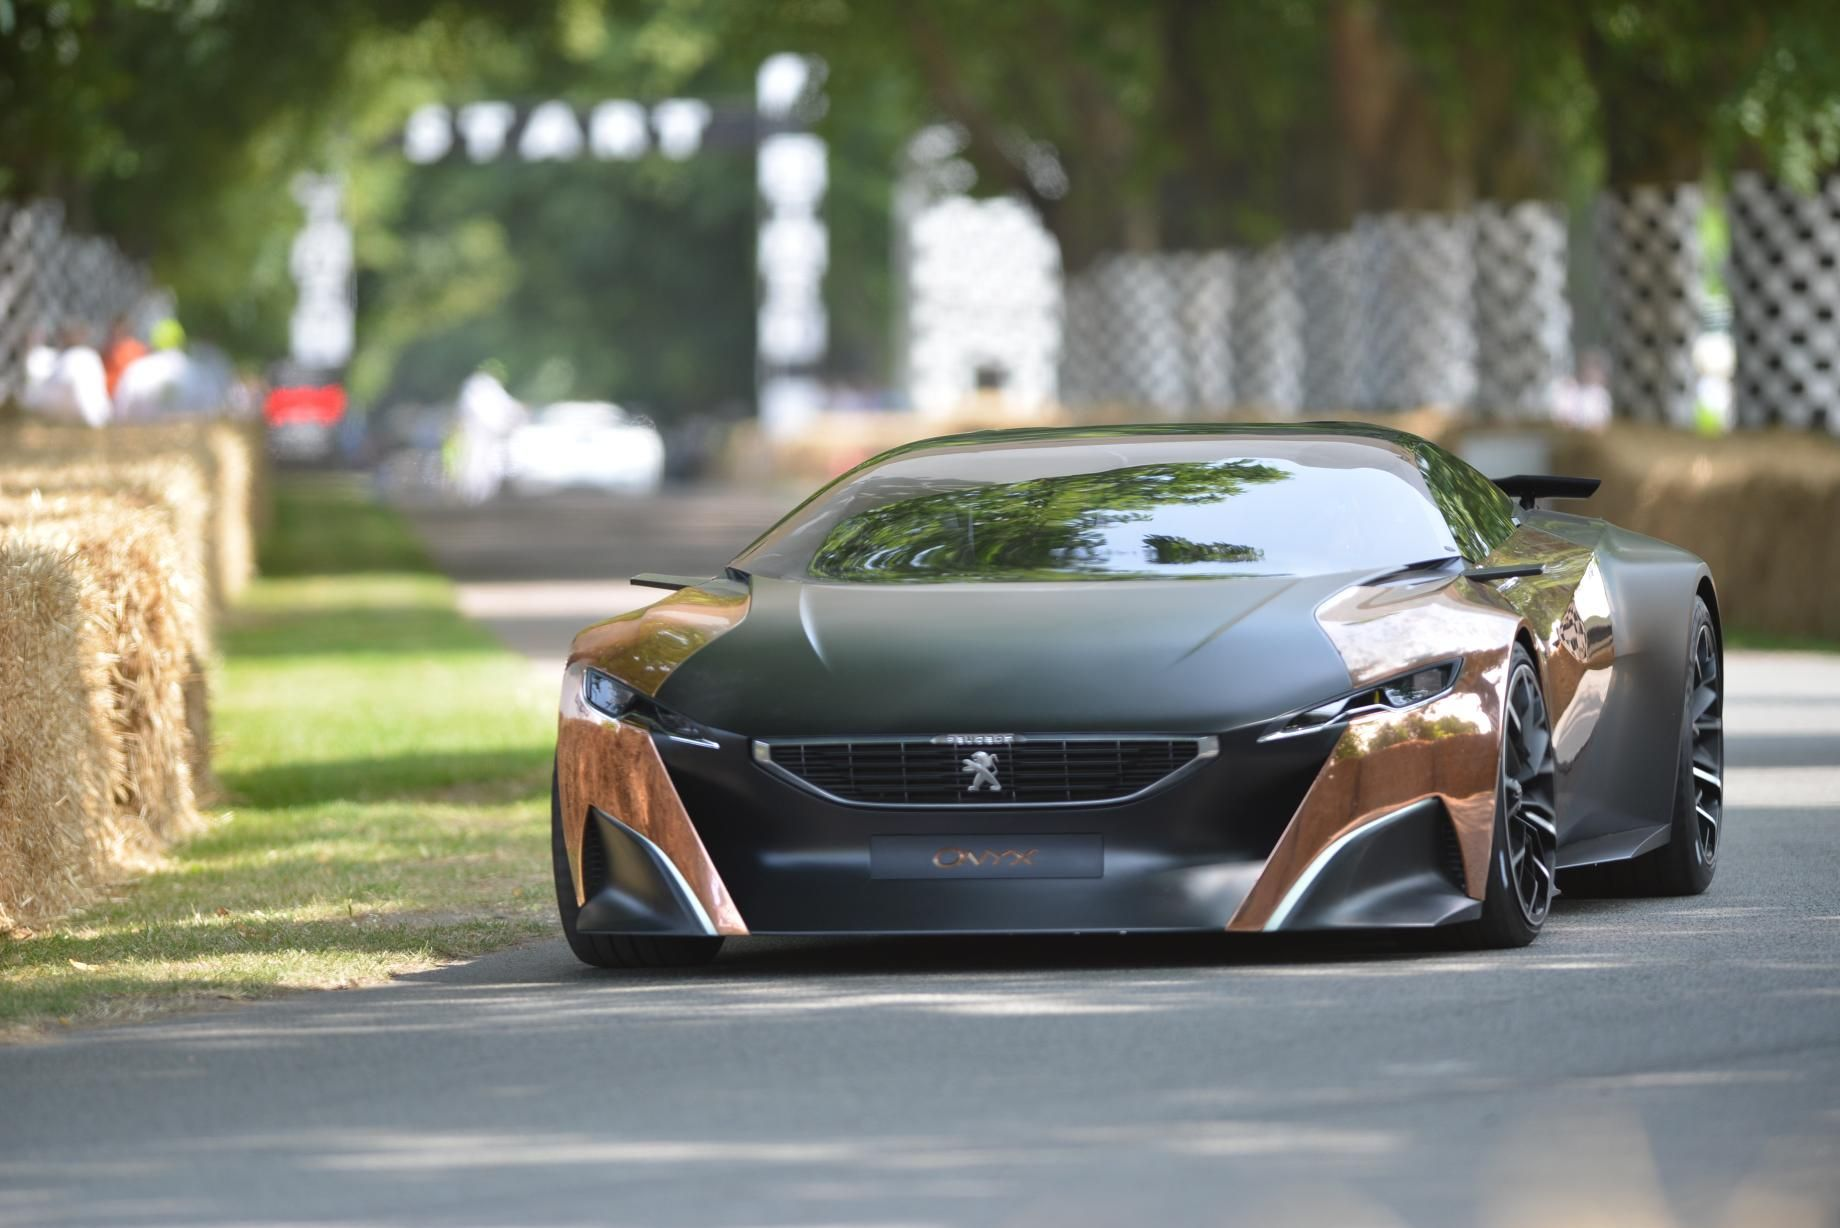 Marvelous 2019 Peugeot Onyx Concept And Release Date    Http://www.carsreleasehq.com/2019 Peugeot Onyx Concept And Release Date/